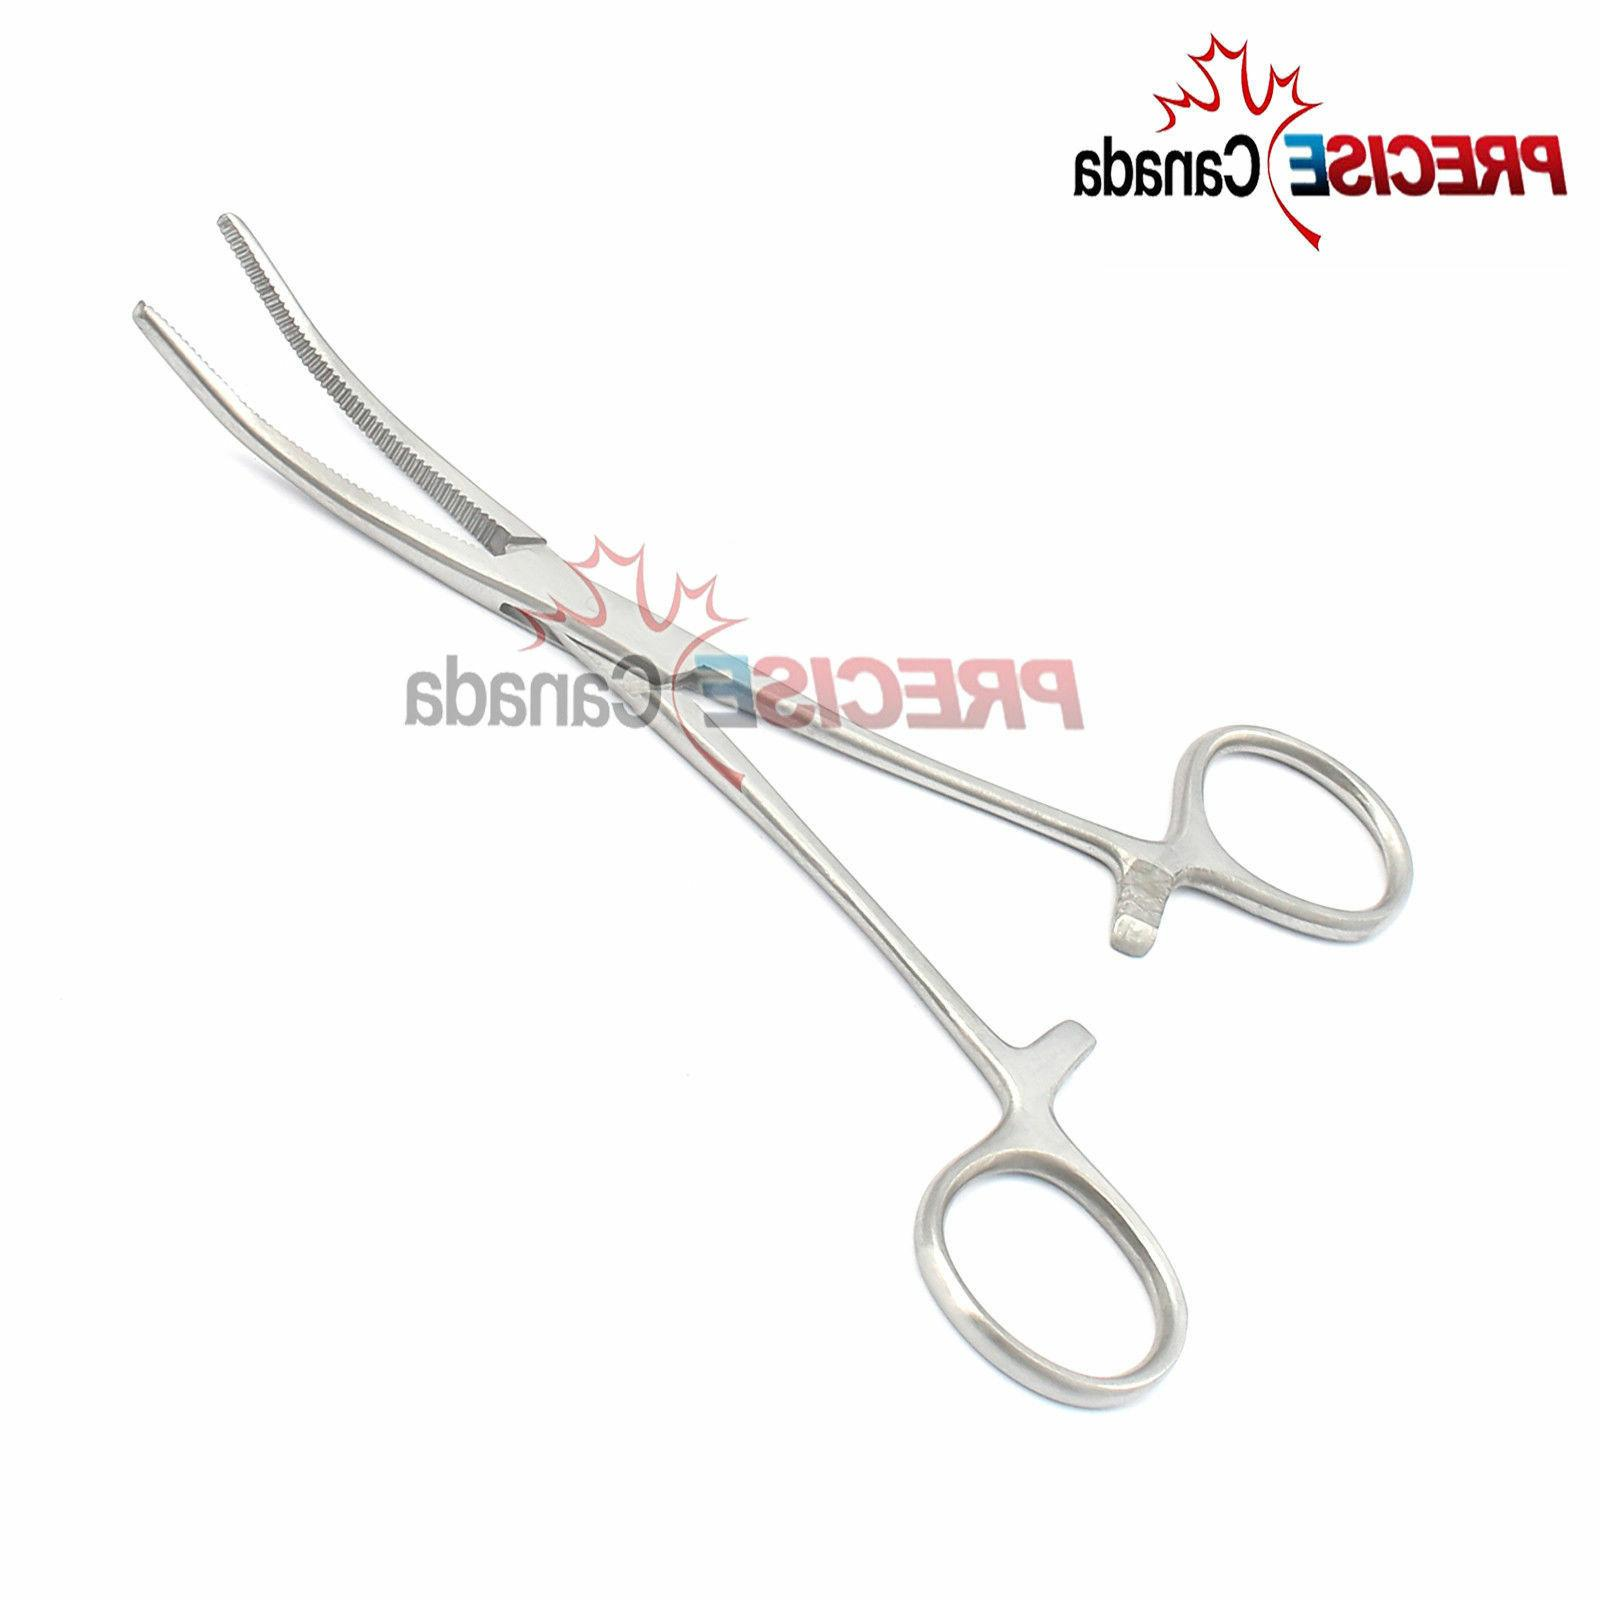 6 inch curved fishing forceps stainless steel